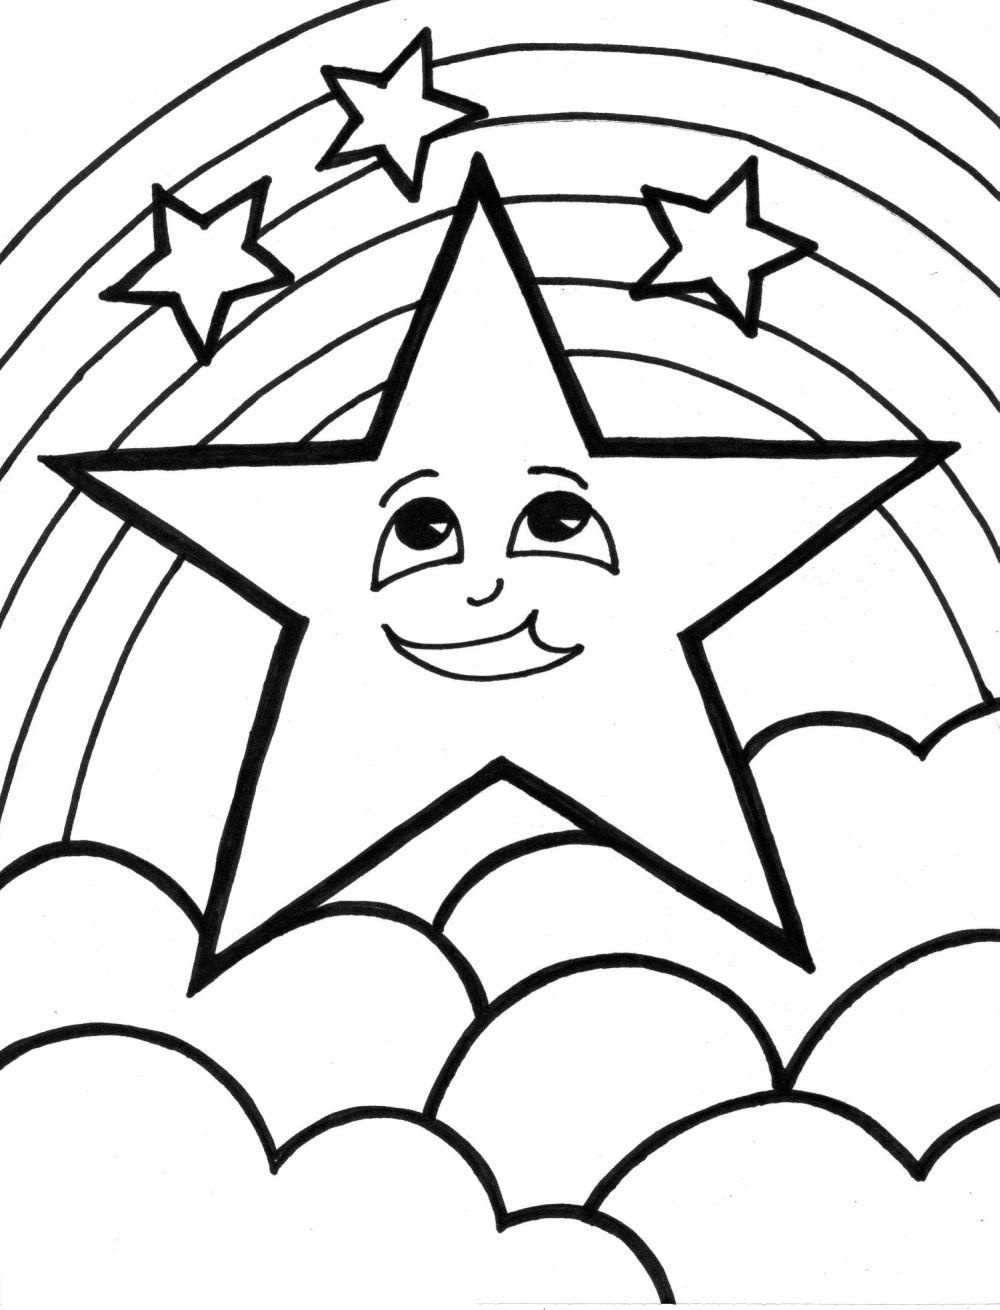 Free Printable Star Coloring Pages For Kids | Birthday Party Ideas - Free Printable Christmas Star Coloring Pages